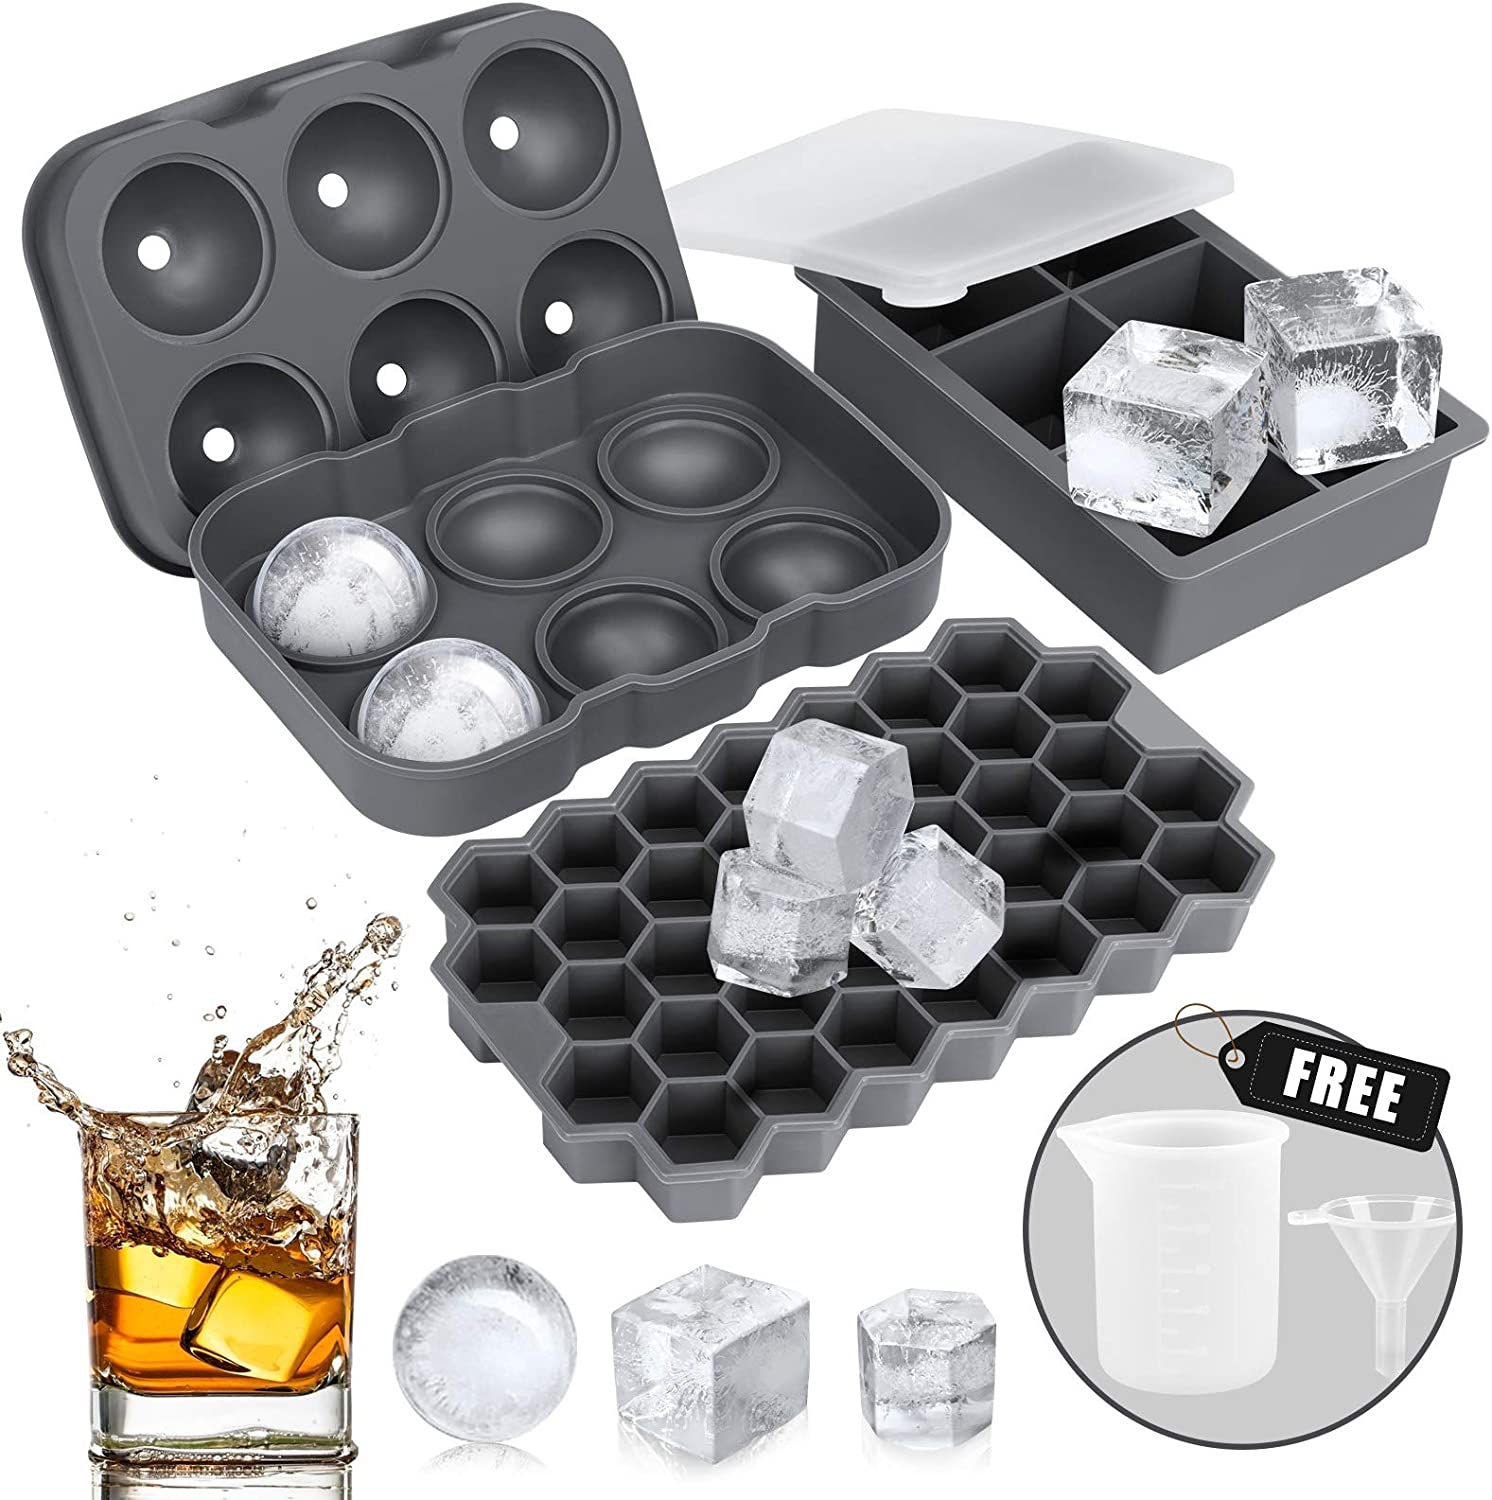 Ice Cube Tray, AiBast Ice Trays for Freezer With Lid, 3 Pack Silicone Large Round Ice Cube Tray, Sphere Square Honeycomb Ice Trays for Whiskey With Covers&Funnel,Reusable Whiskey Ice Ball Mold Grey